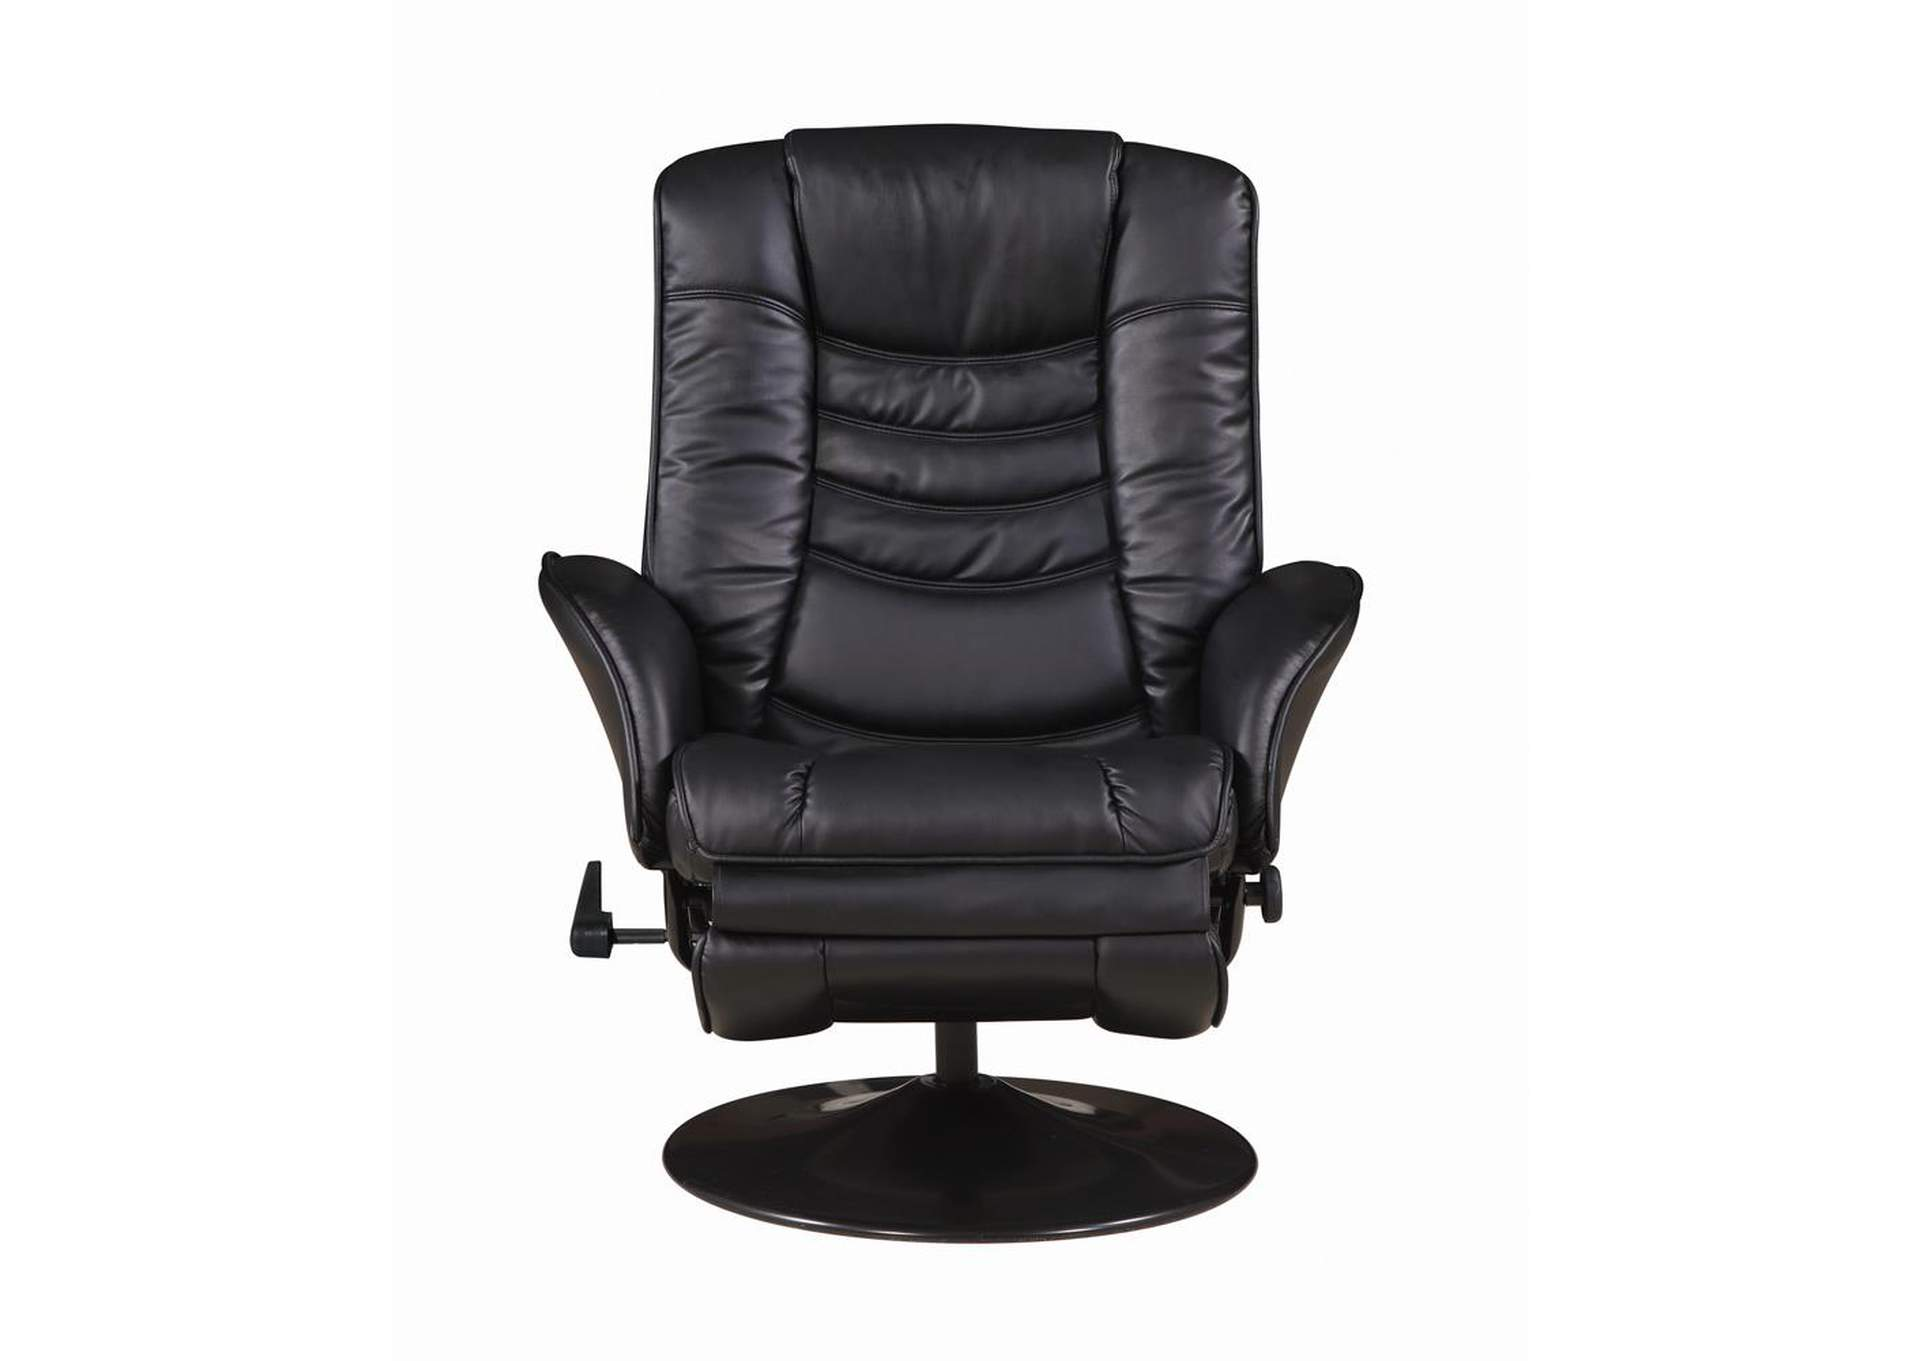 Eerie Black Casual Black Faux Leather Swivel Recliner,Coaster Furniture